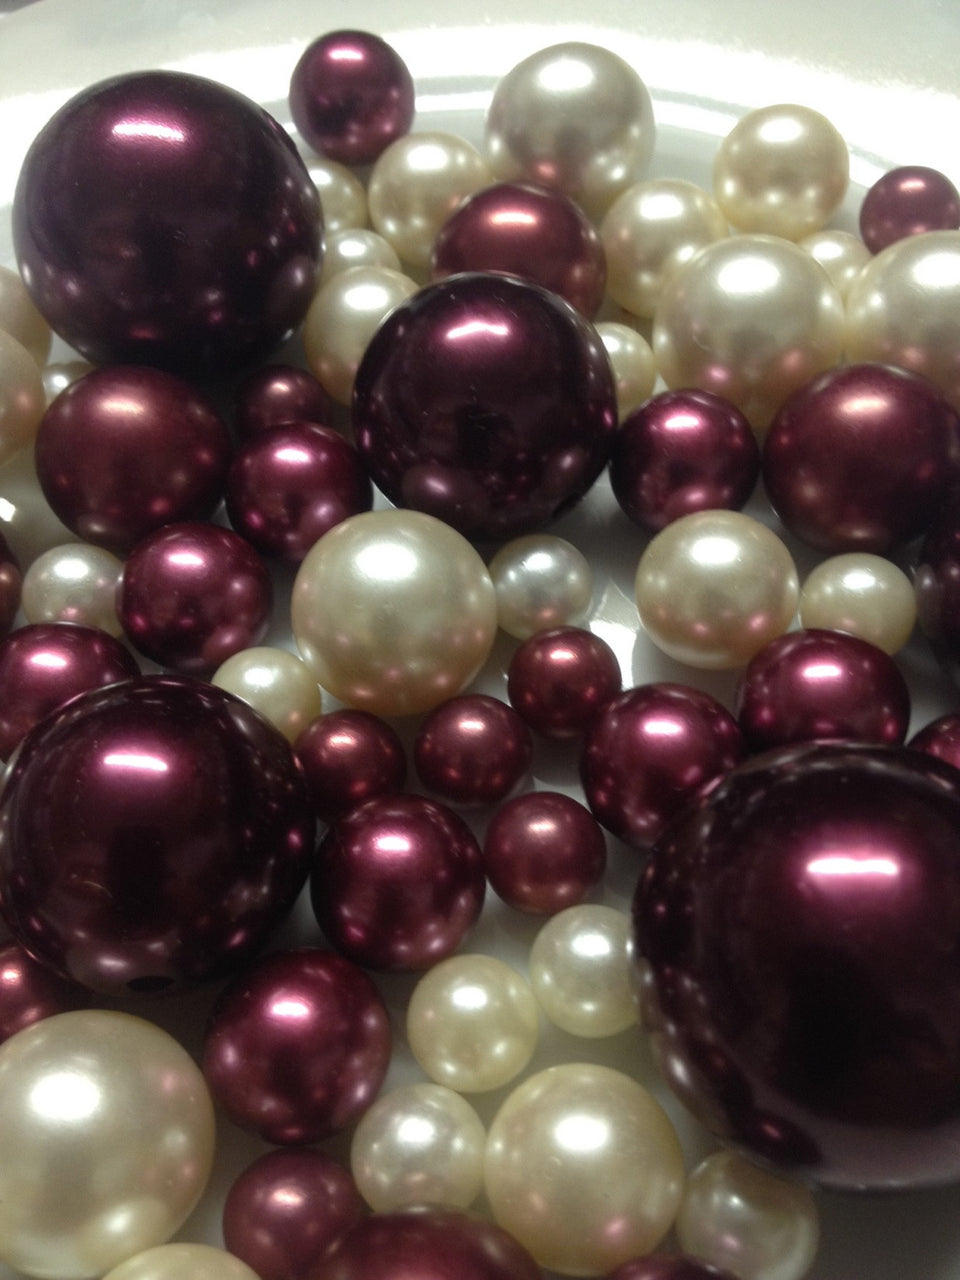 Burgundy And Ivory Pearls, Vase Filler Pearls, Pearl Table Scatters, DIY Floating Pearl Centerpiece, Jumbo Pearls